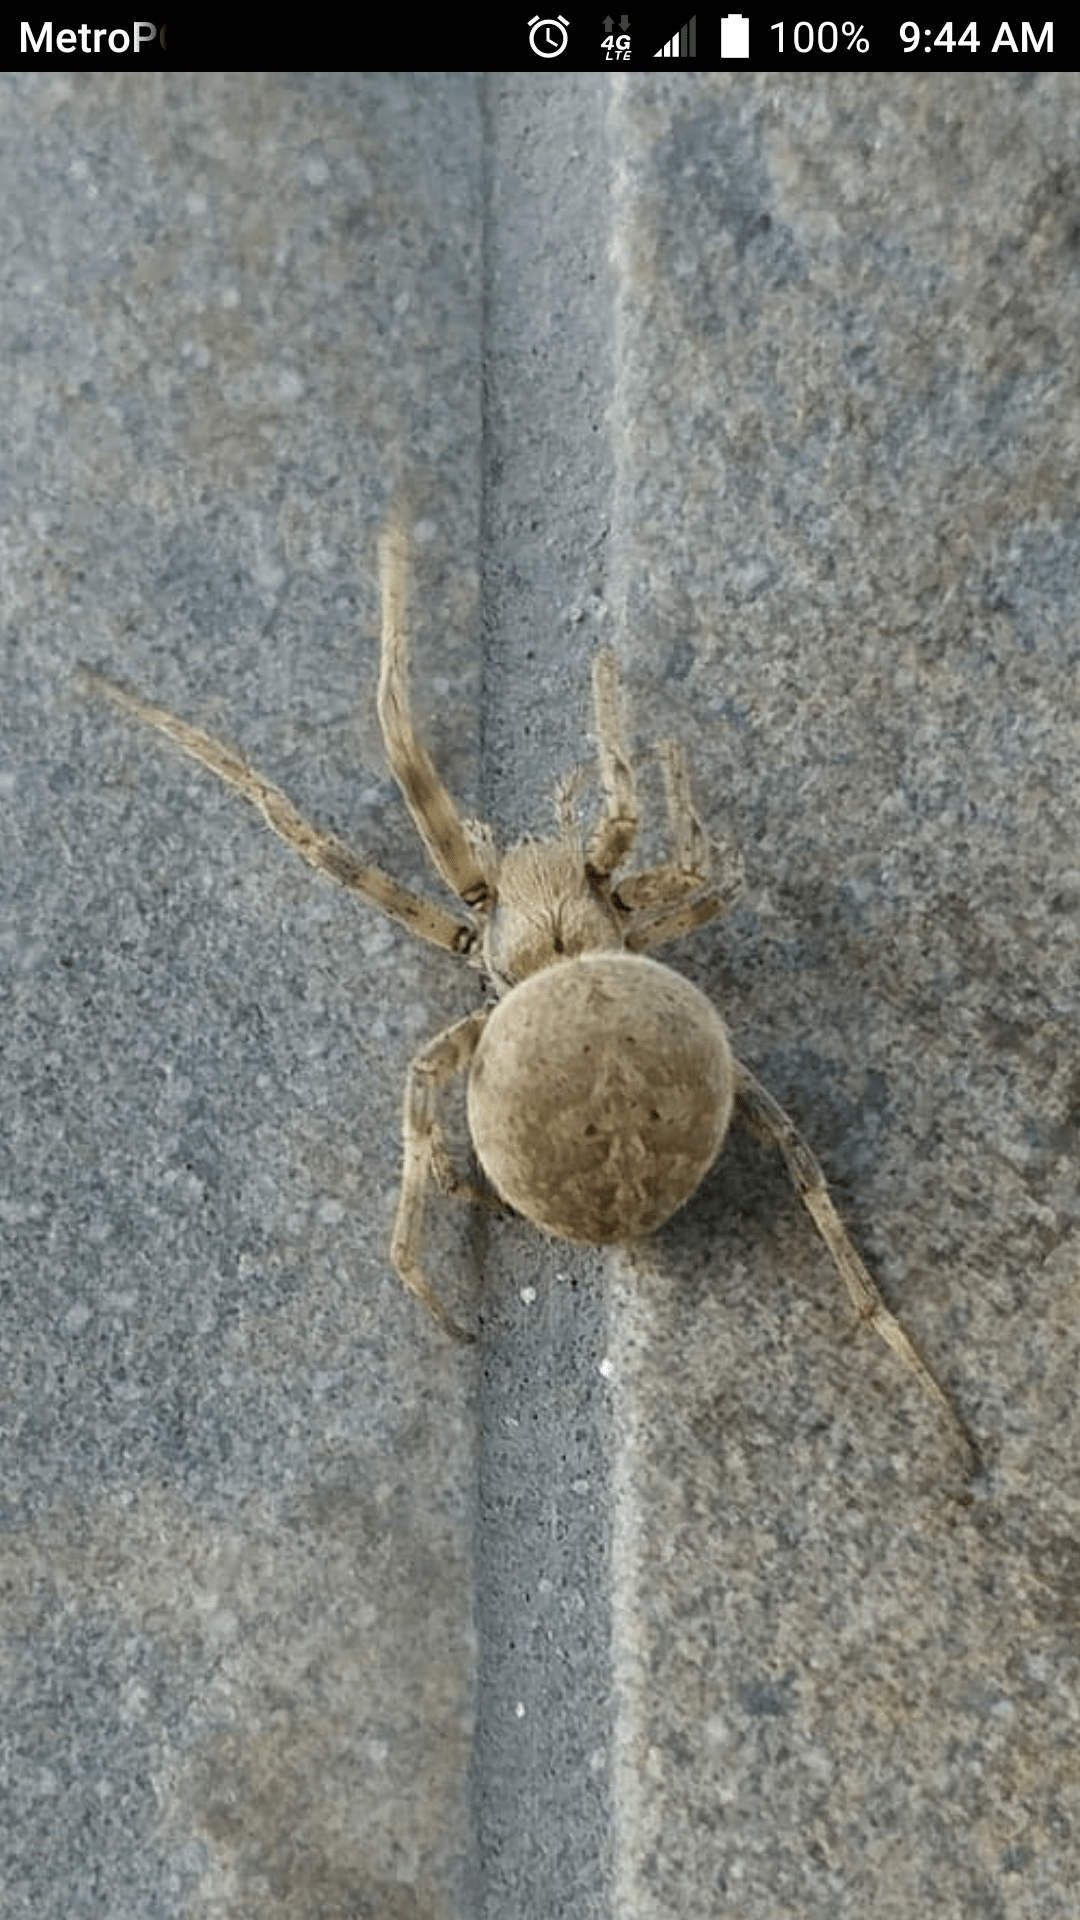 Picture of Neoscona (Spotted Orb-weavers) - Dorsal